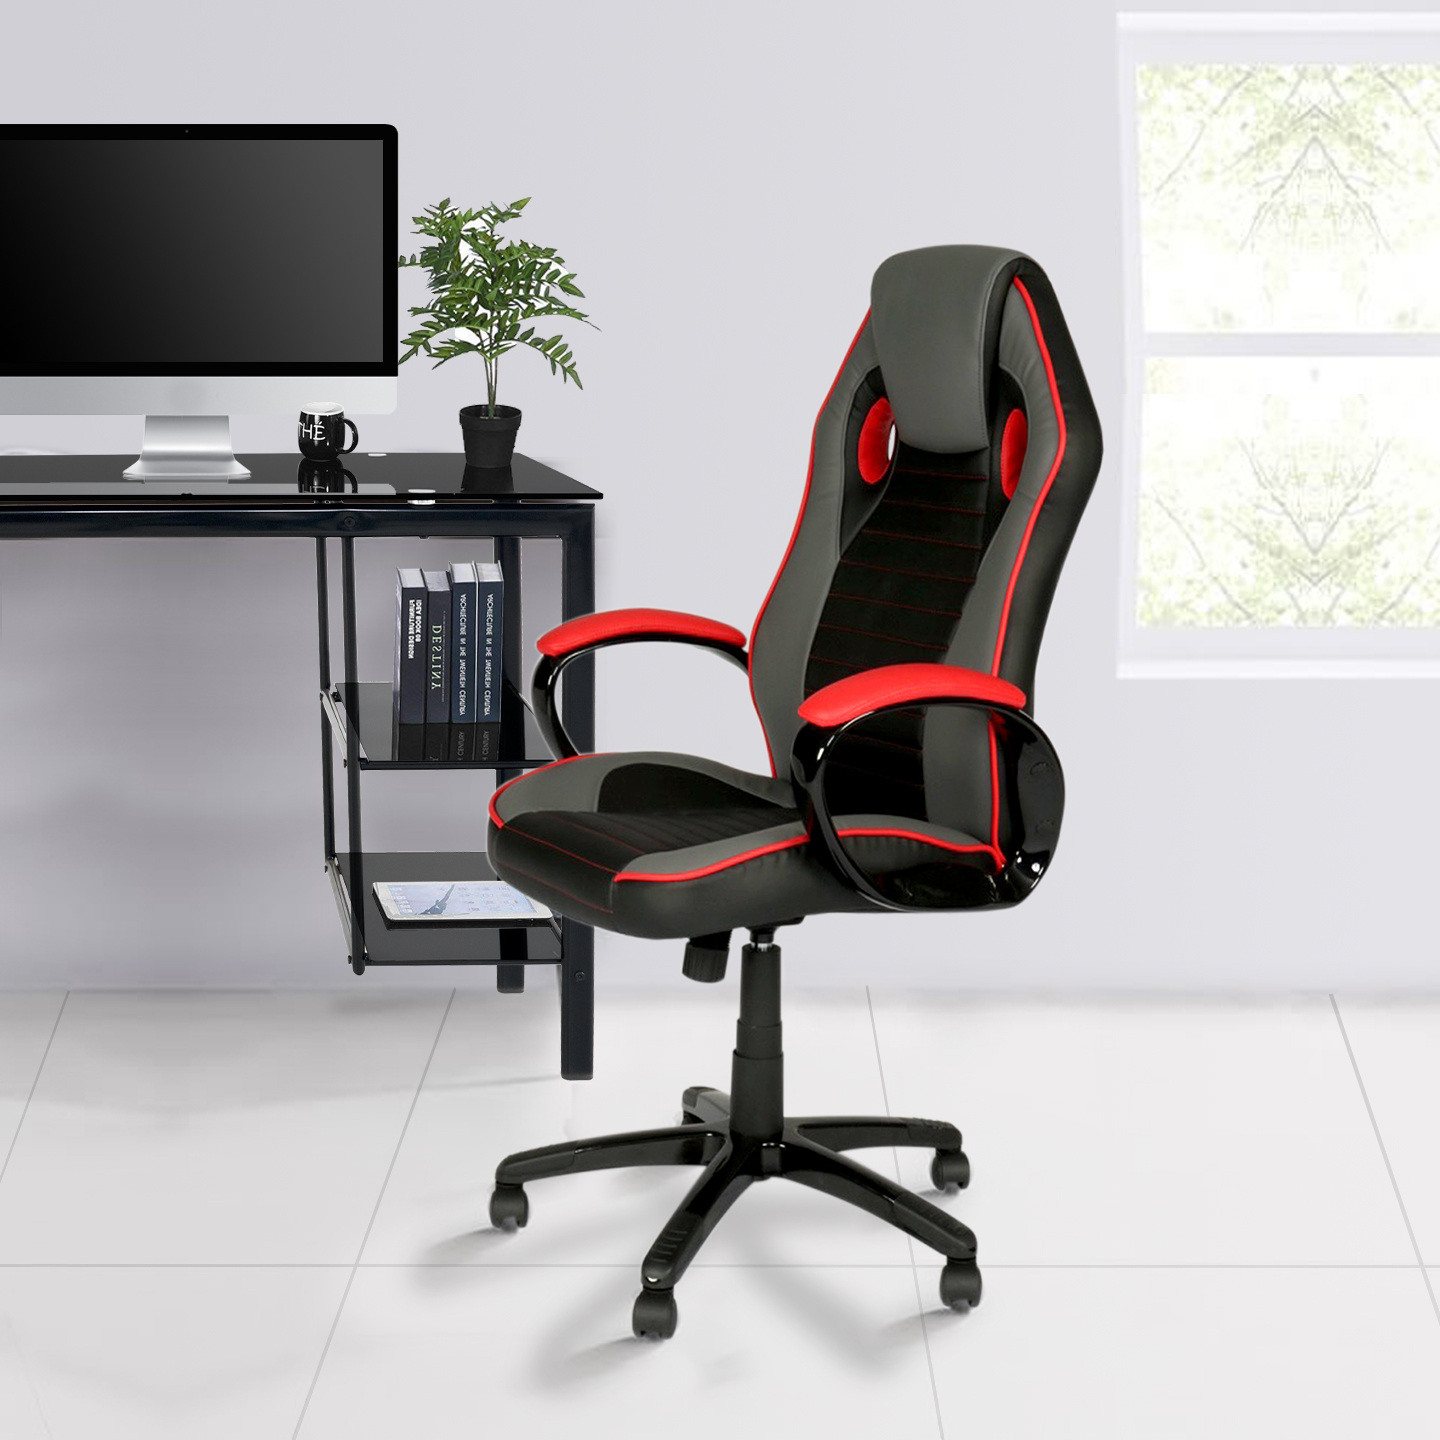 Miraculous Indus Office Chair Black With Grey And Red Accents Living Gmtry Best Dining Table And Chair Ideas Images Gmtryco